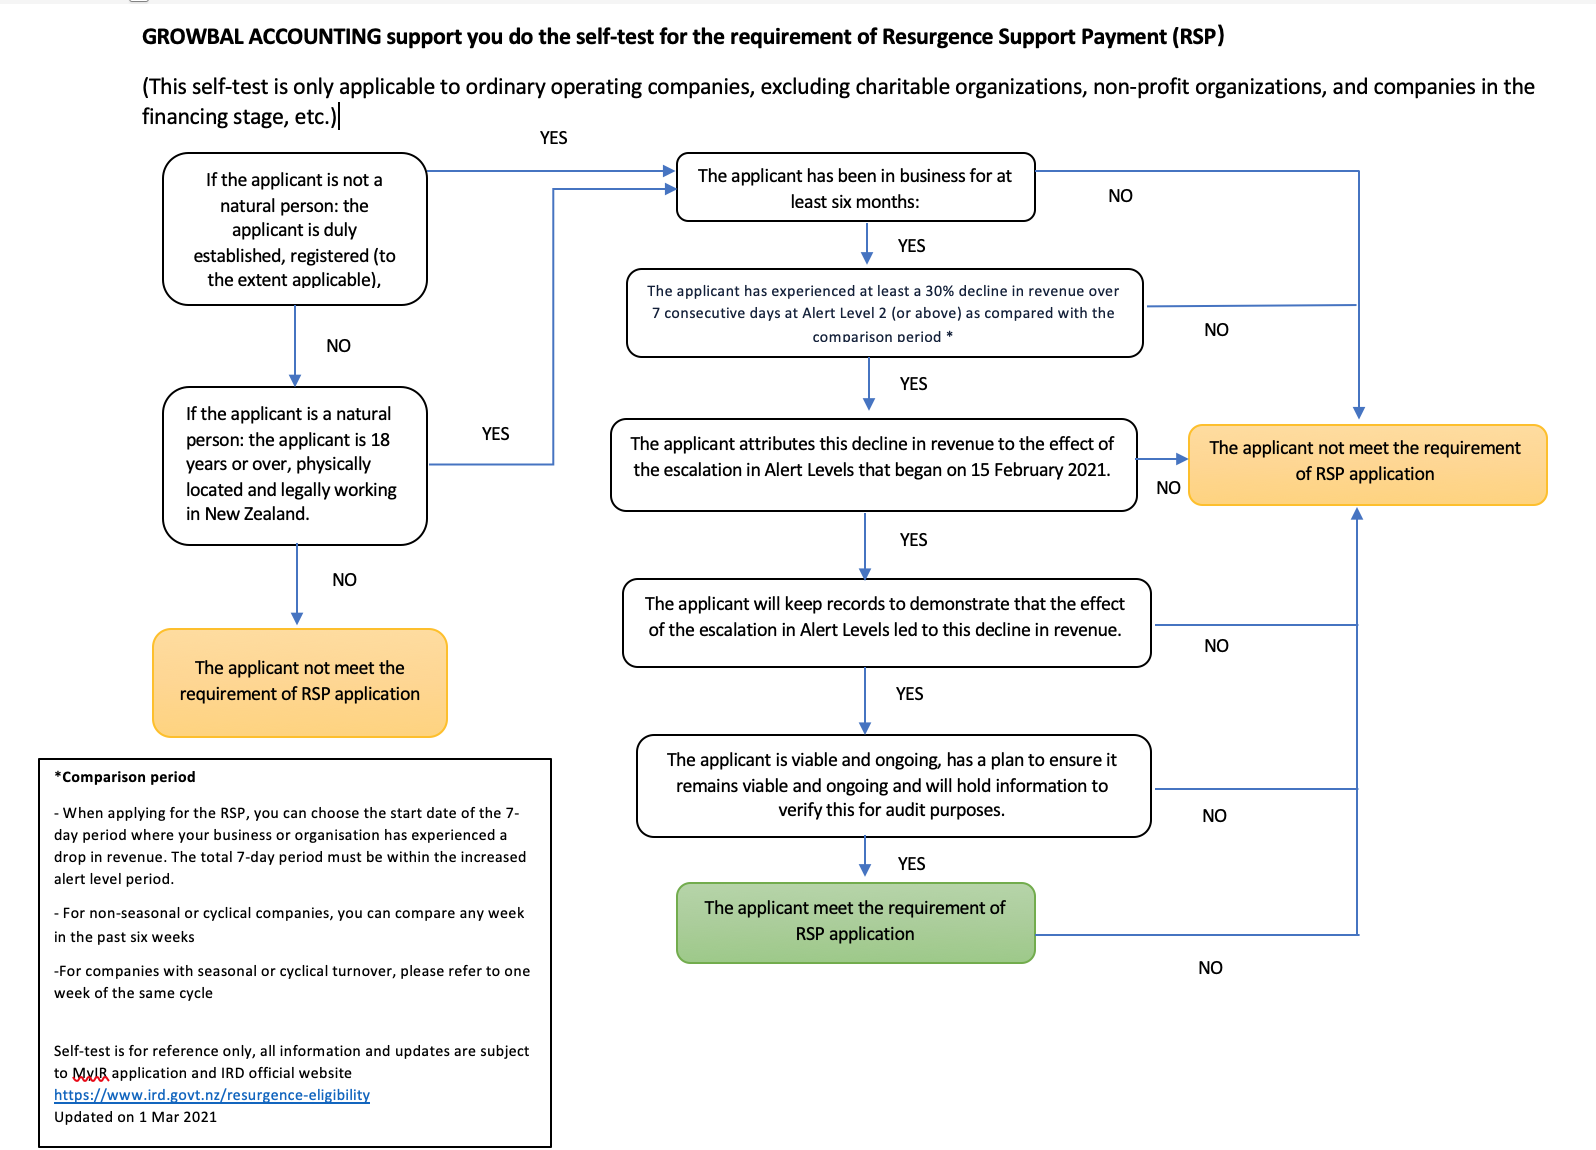 Self-test for the requirement of Resurgence Support Payment (RSP)